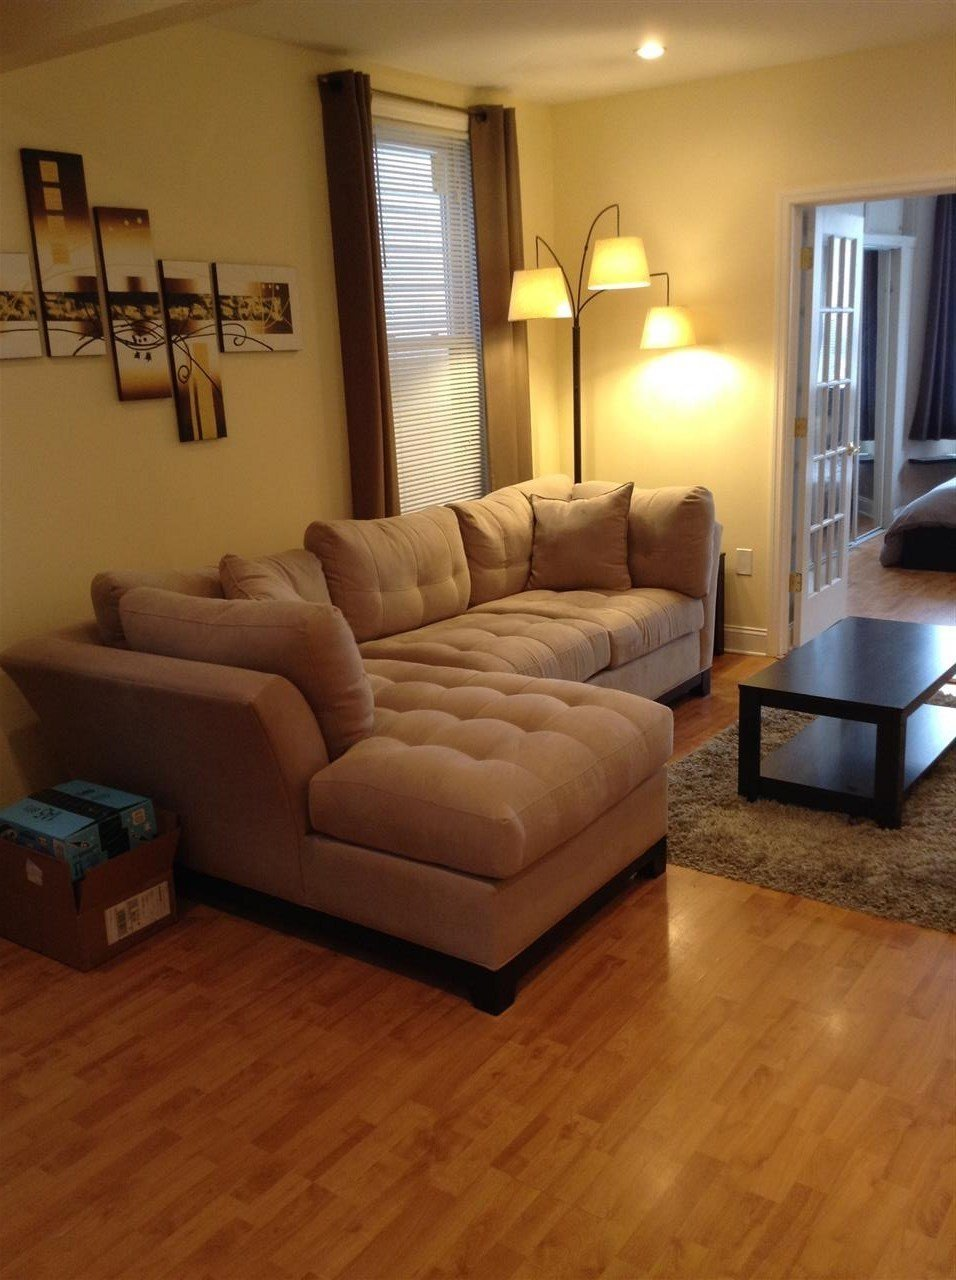 Best 110 Booraem Ave 2 Jersey City Nj 07307 3 Bedroom House With Pictures